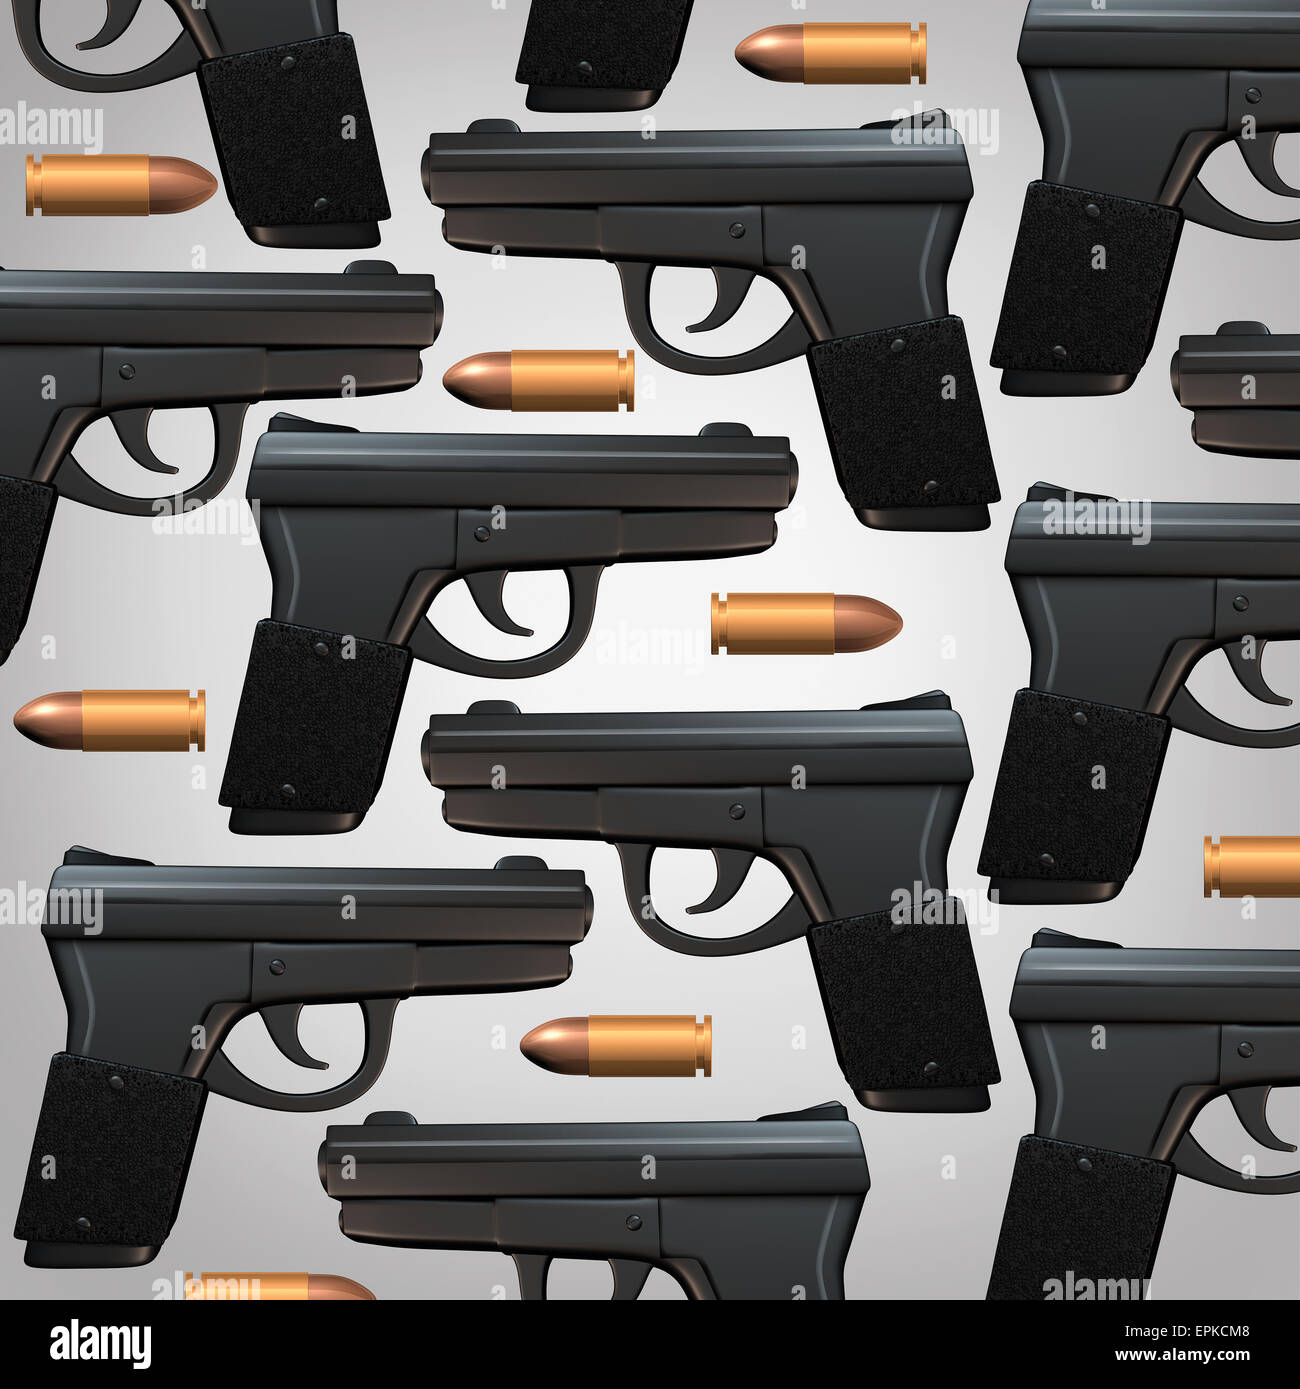 Gun and bullet background for legal social issues and firearm laws concept as a generic three dimensional handgun - Stock Image